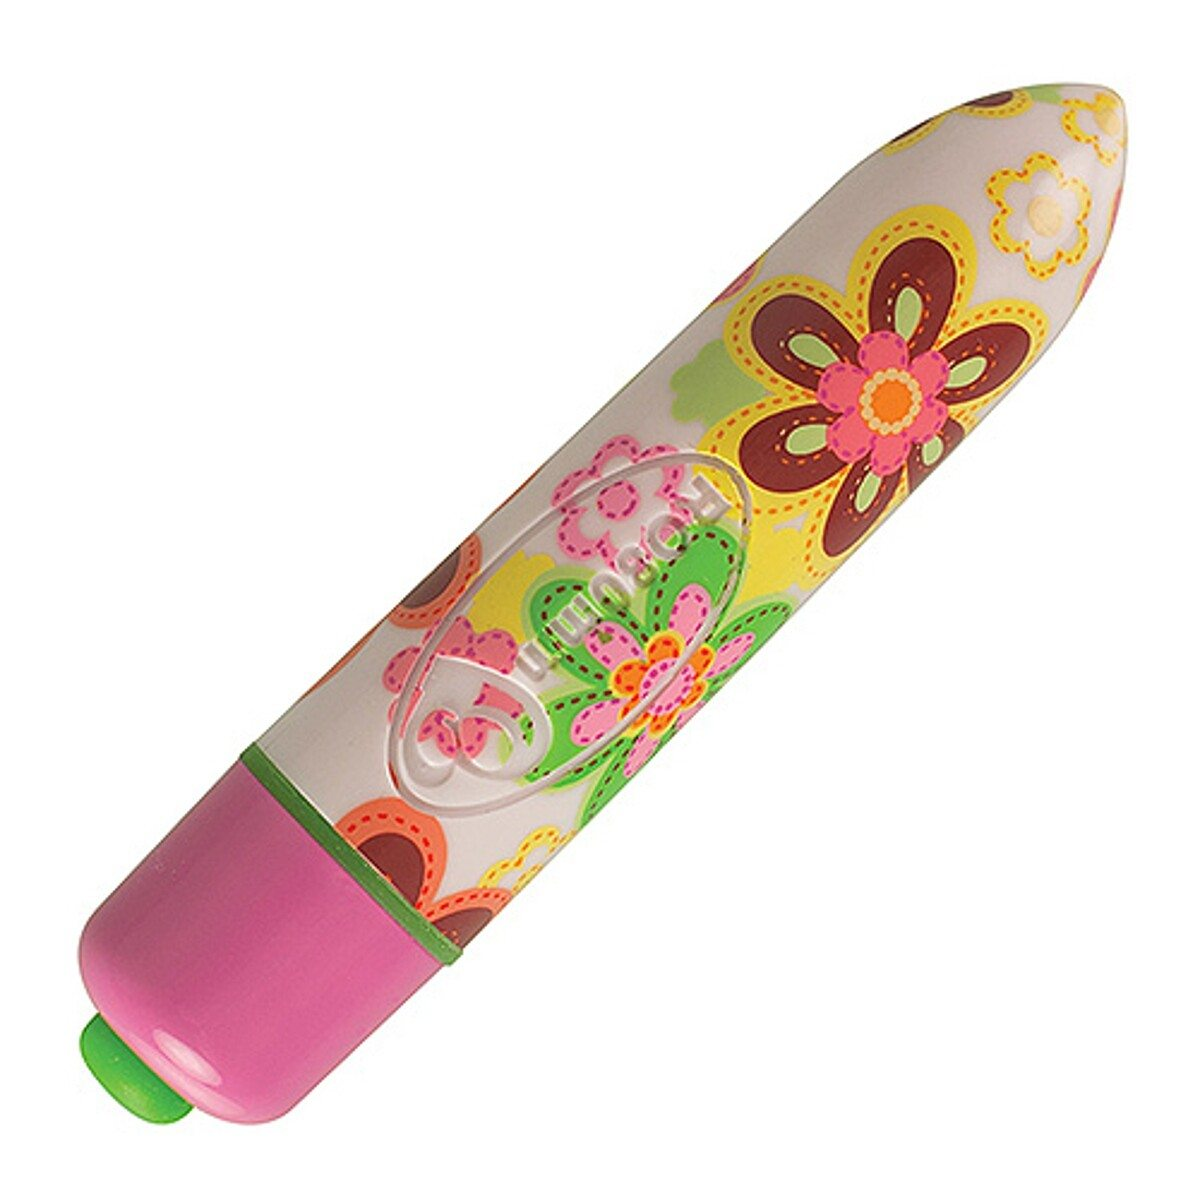 "Rocks Off 7-Stufen Vibrator ""Flower Power"""